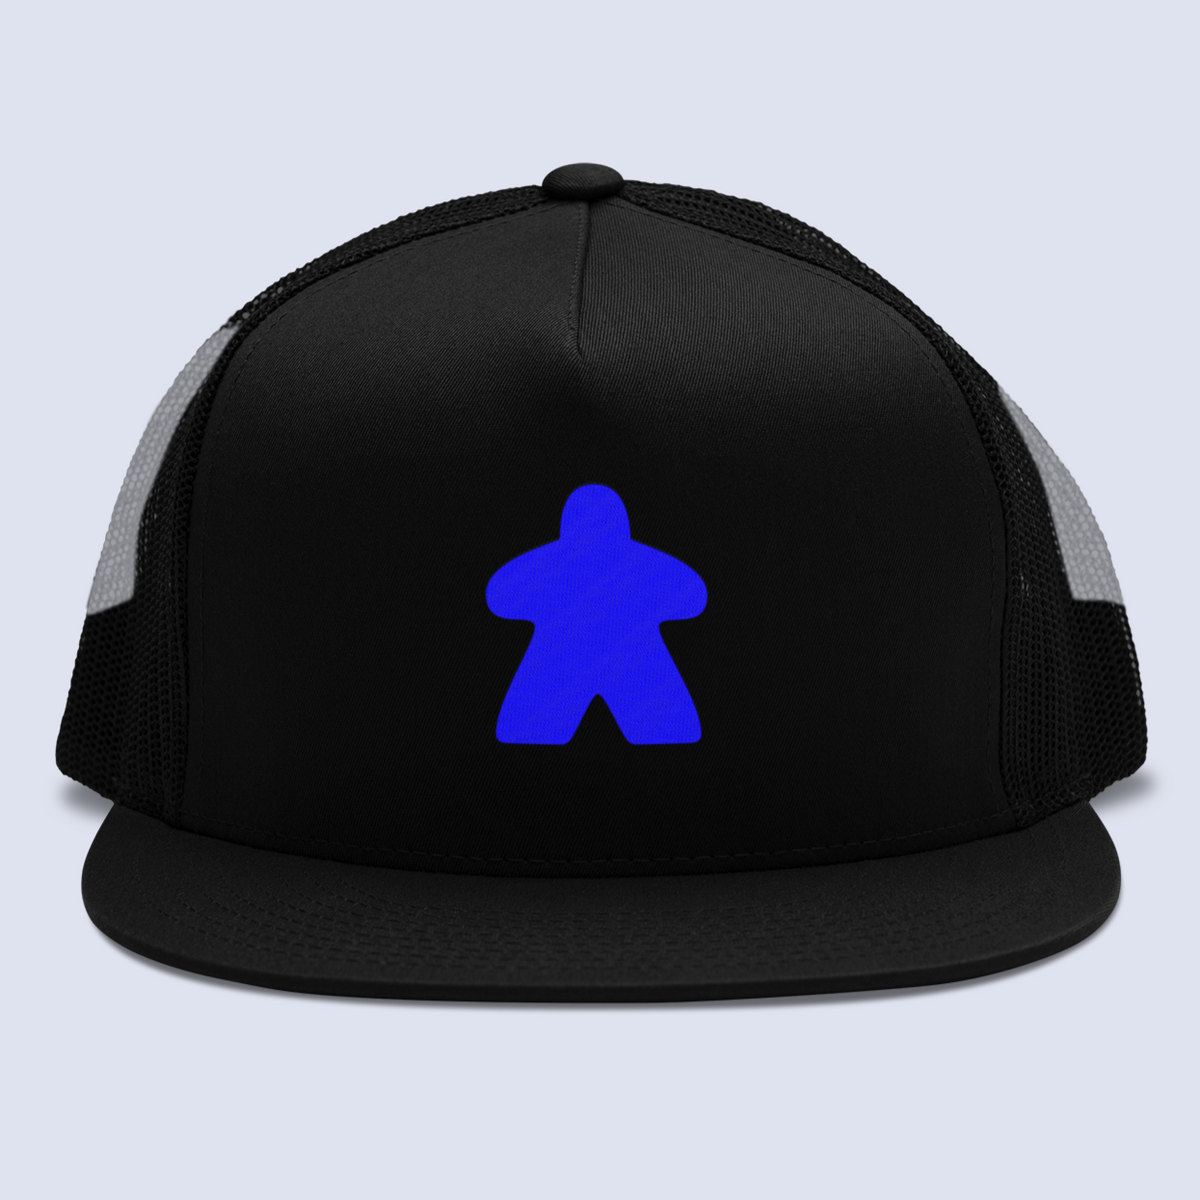 Blue Meeple Board Game Flat Bill Trucker Hat